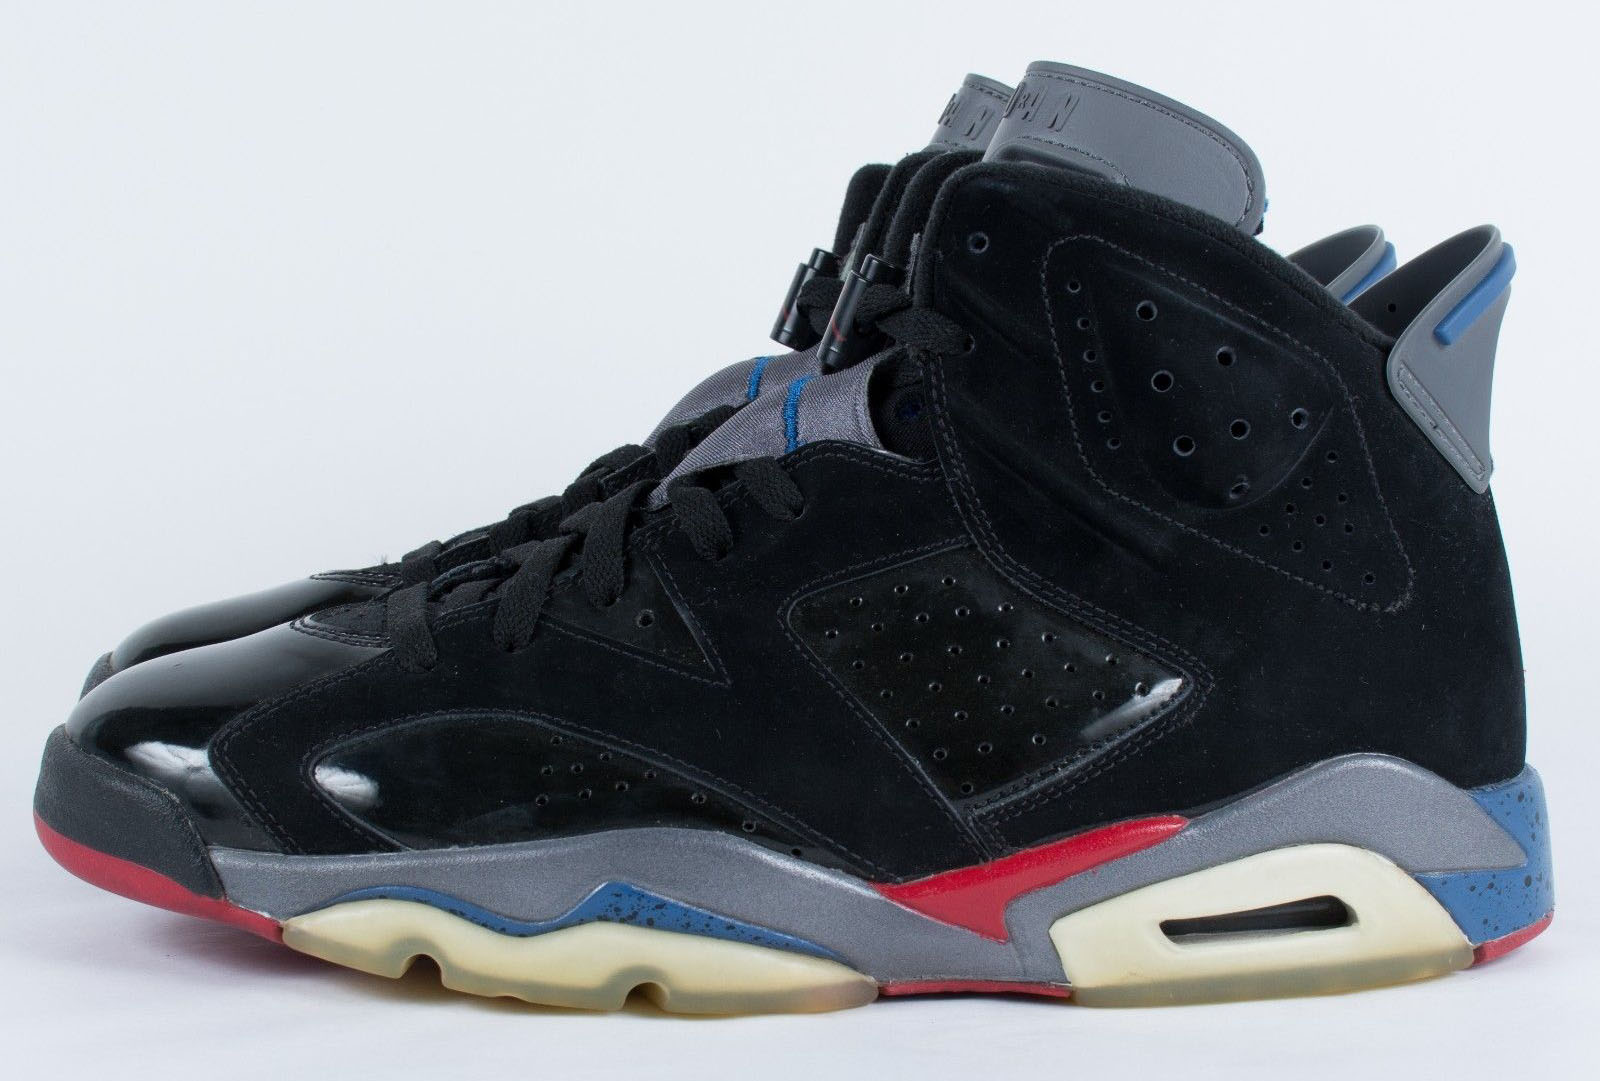 Air Jordan 6 Retro Pistons Black Red Blue Light Graphite shoes